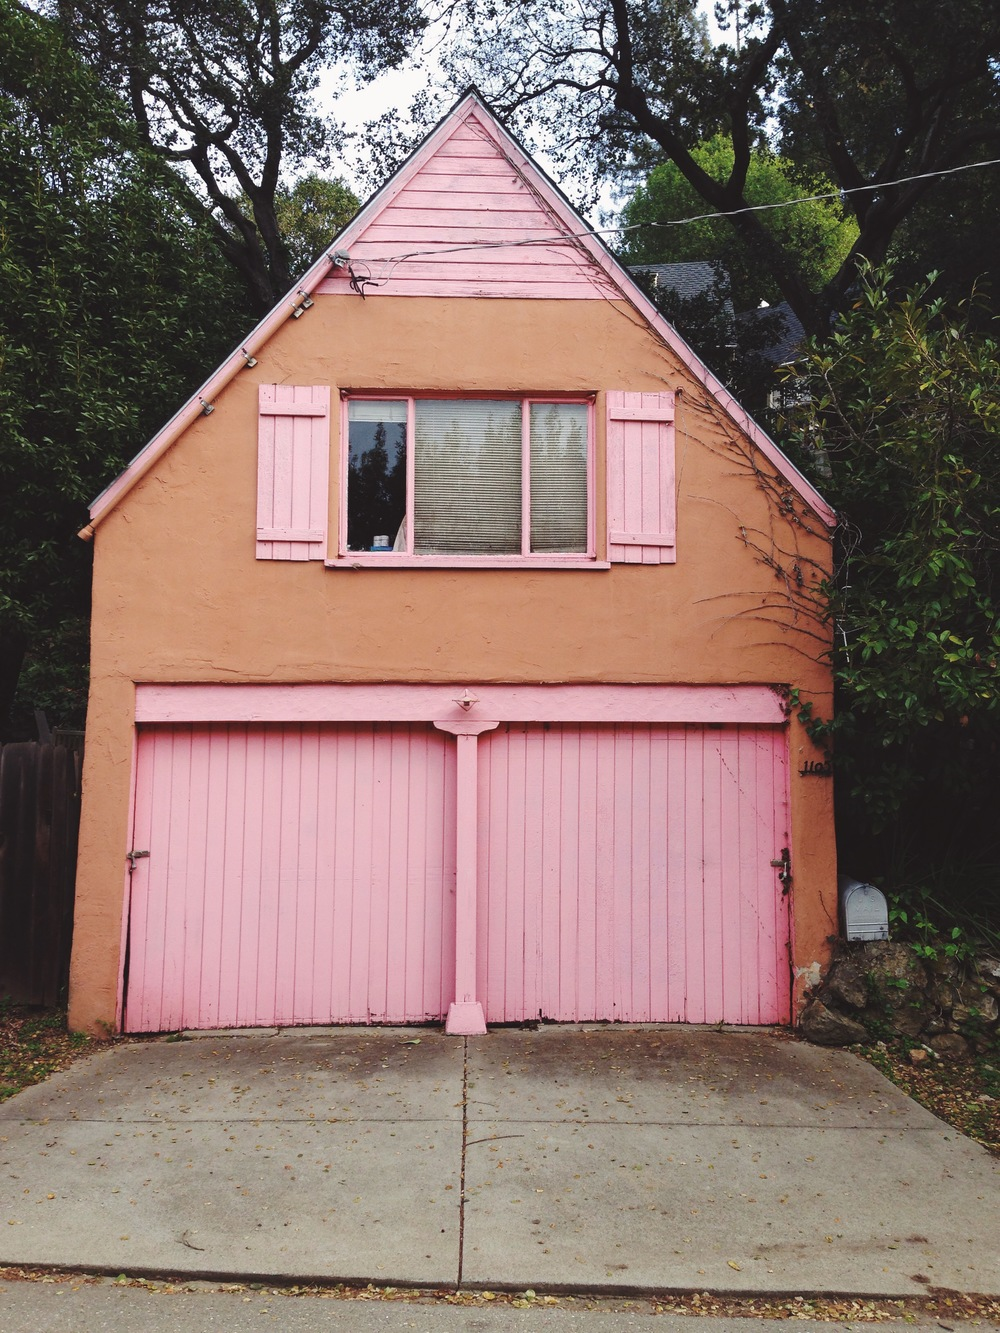 An unusual paint choice for the Berkeley Hills.